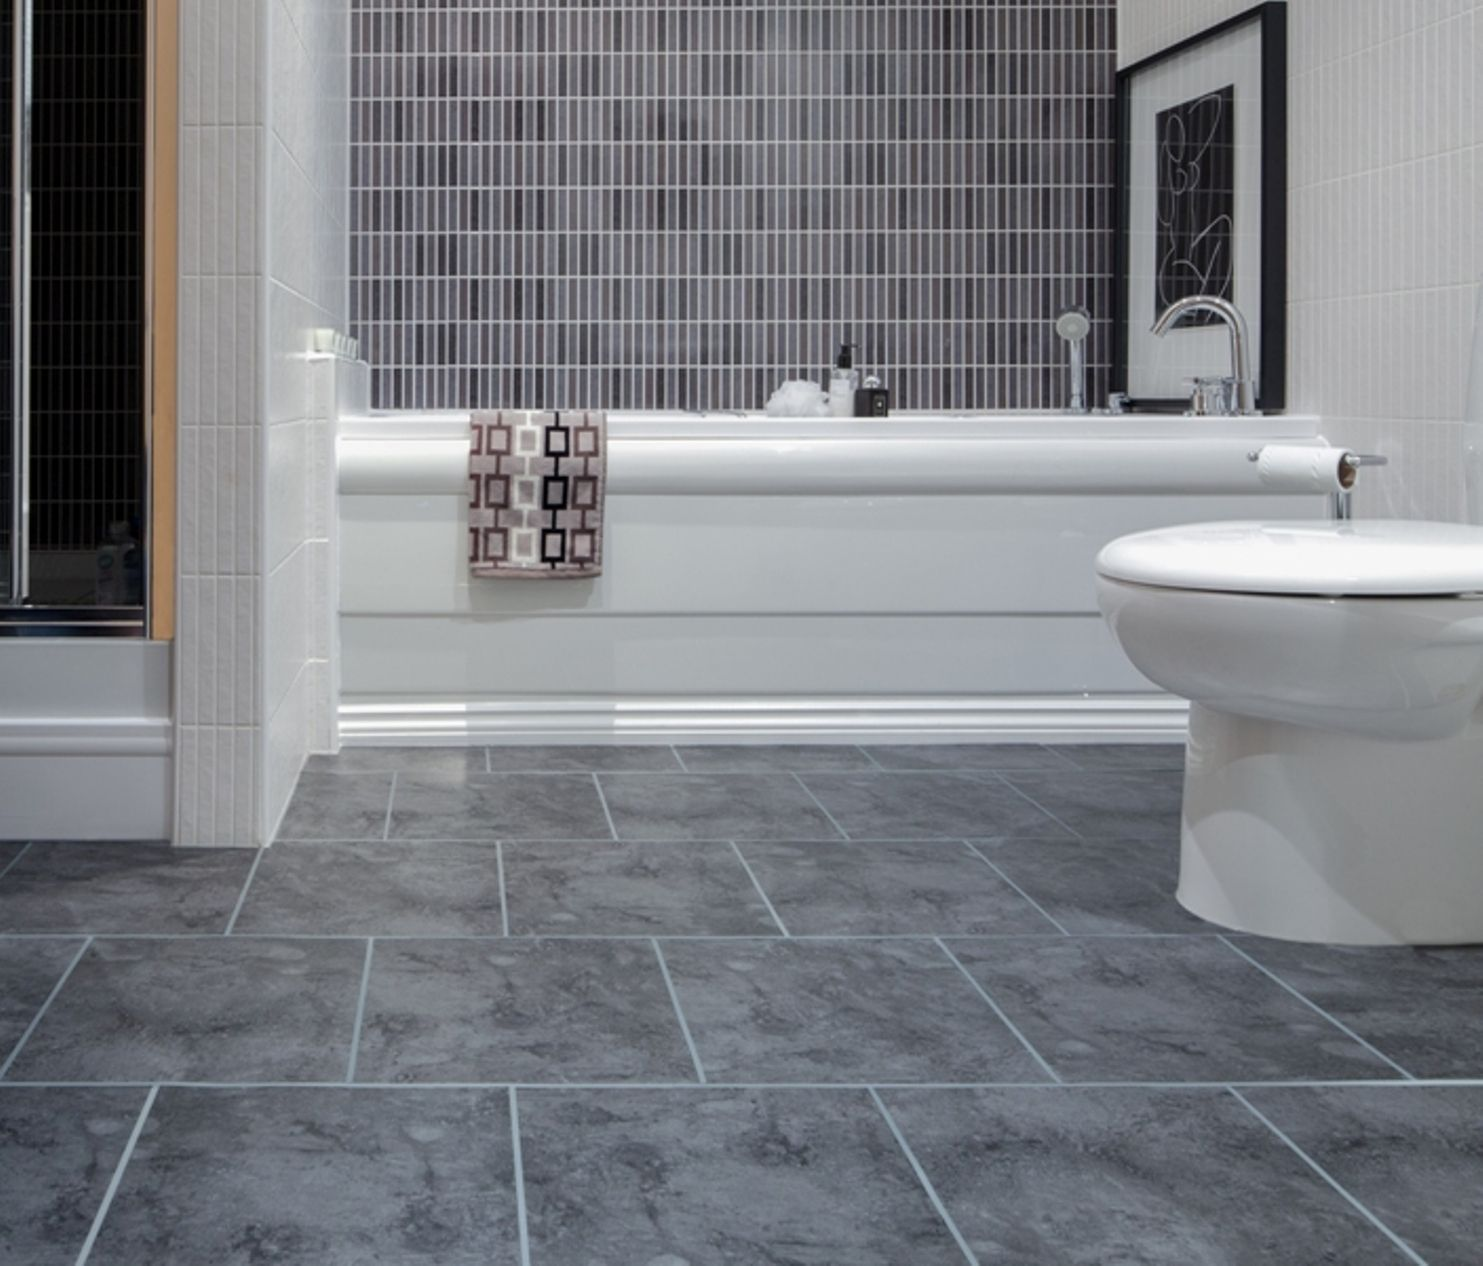 Tiles Bathroom Floor a safe bathroom floor tile ideas for safe and healthy bathroom